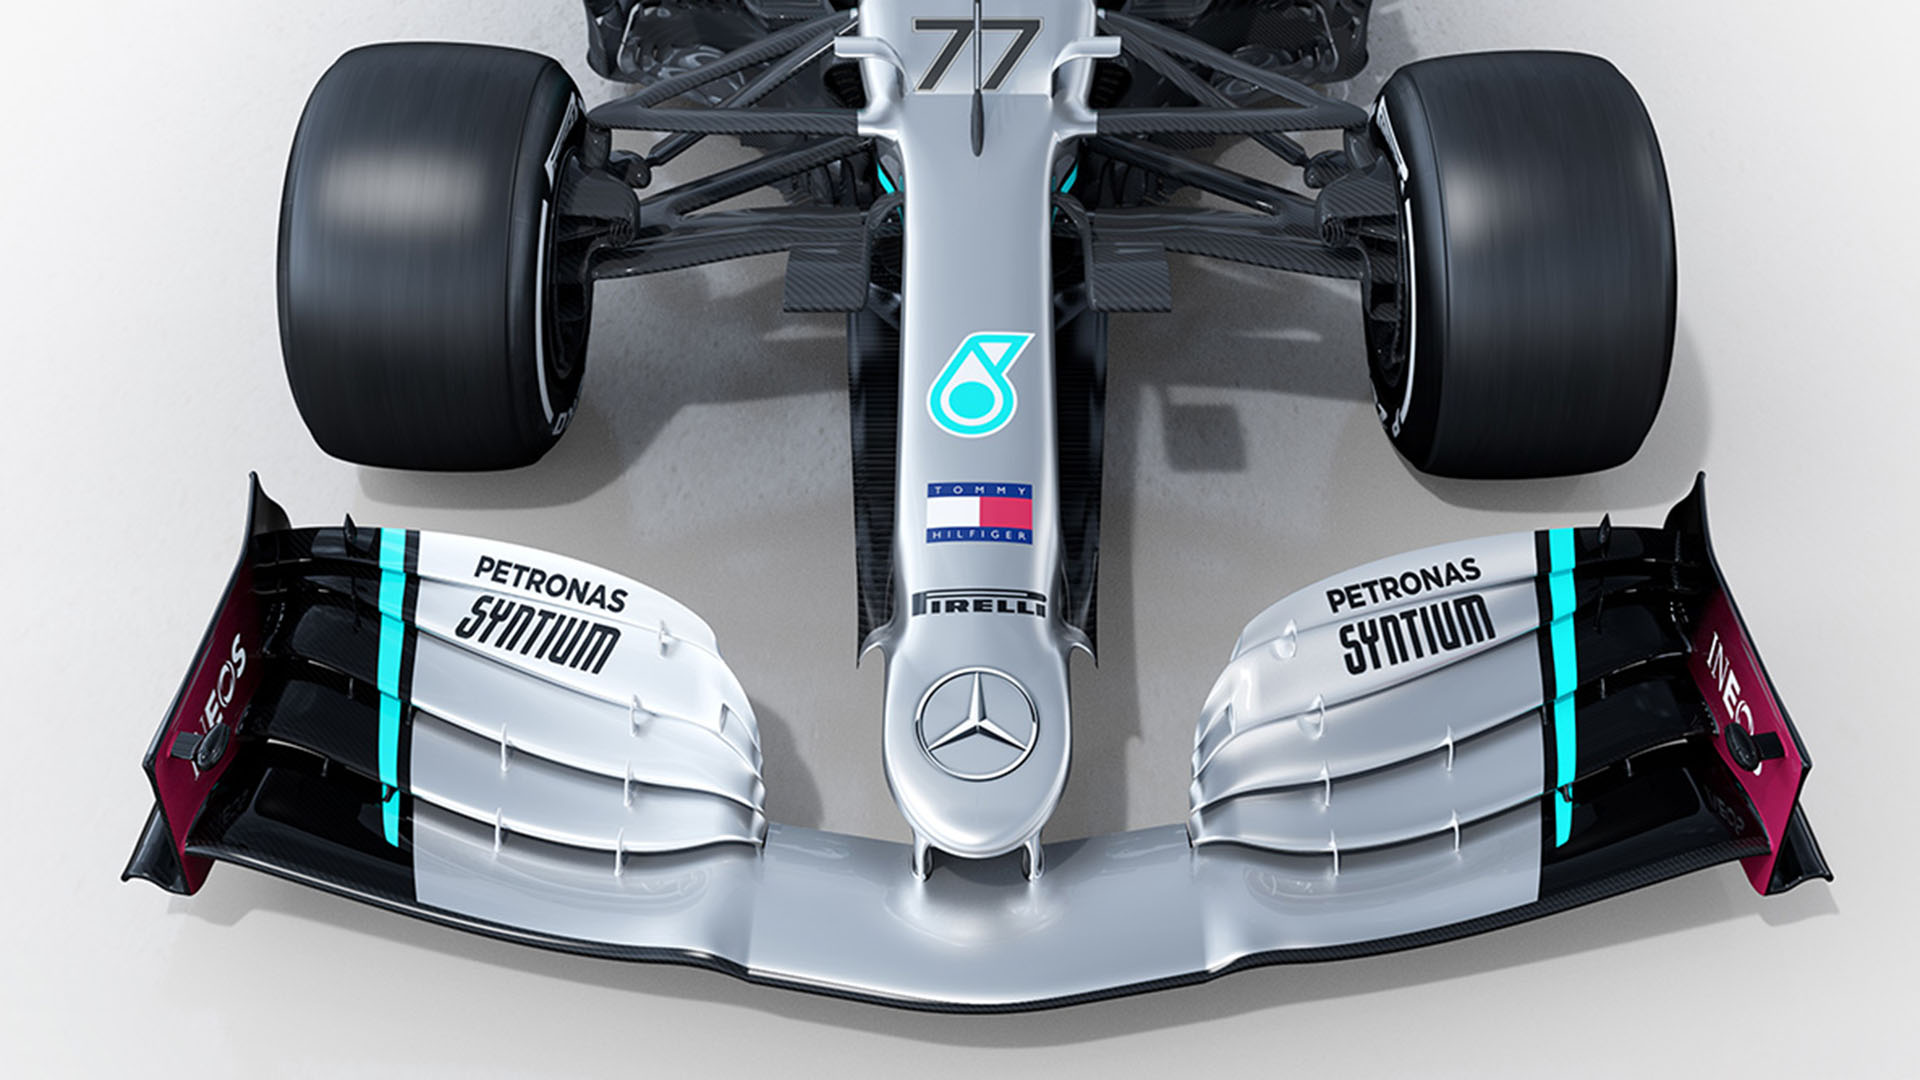 Mercedes' 2020 F1 car: Our first take on Lewis Hamilton's W11